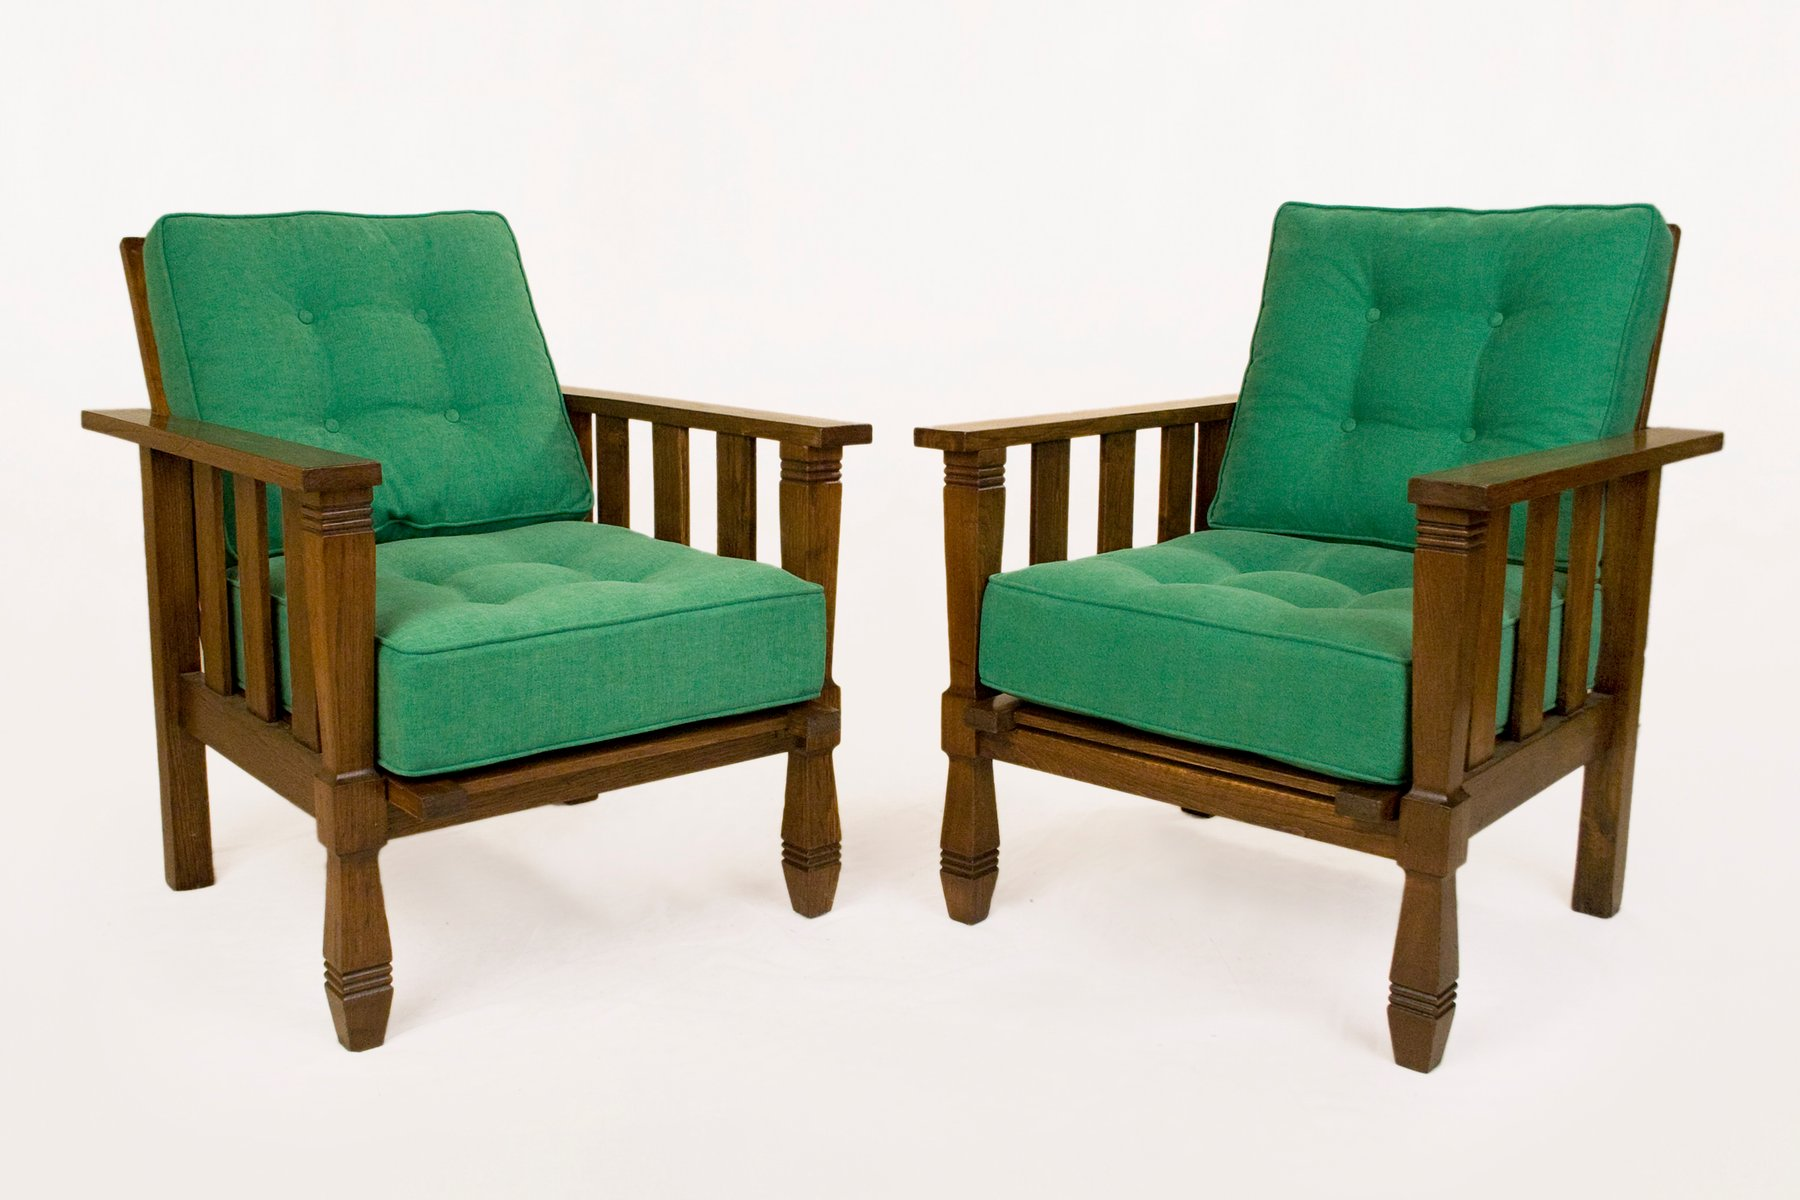 Vintage Wood And Green Arm Chairs By William Morris 1920s